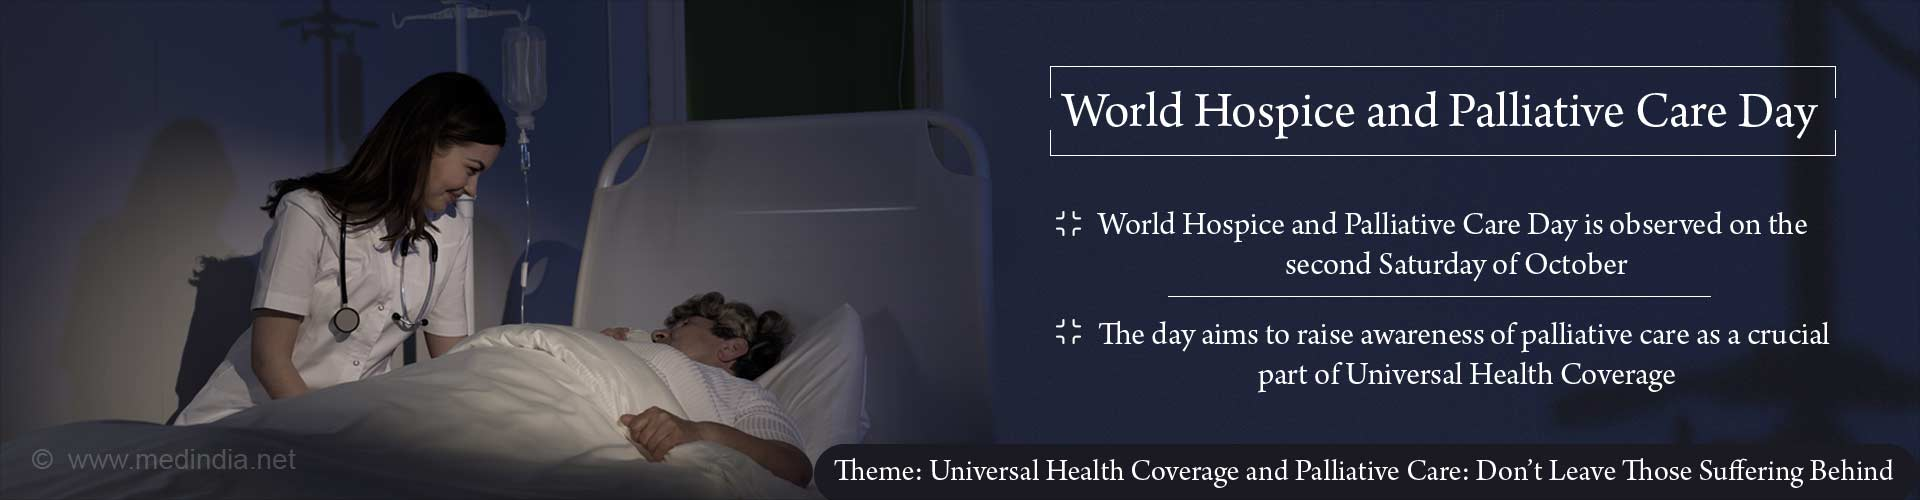 World Hospice and Palliative Care Day: Universal Health Coverage and Palliative Care